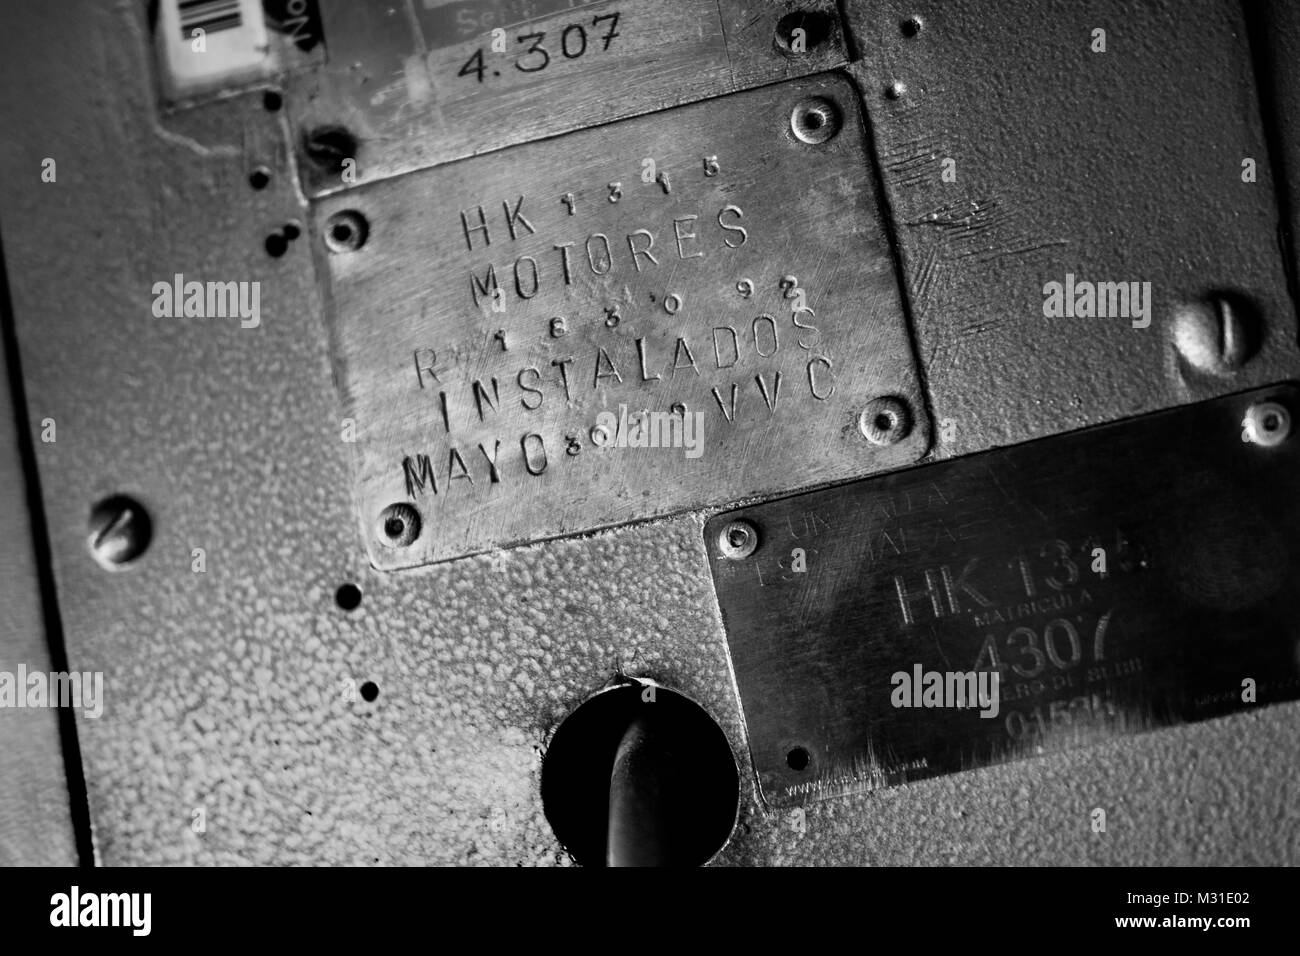 Data plates, showing the engines installation date, are seen in the cockpit of a Douglas DC-3 aircraft at the airport - Stock Image